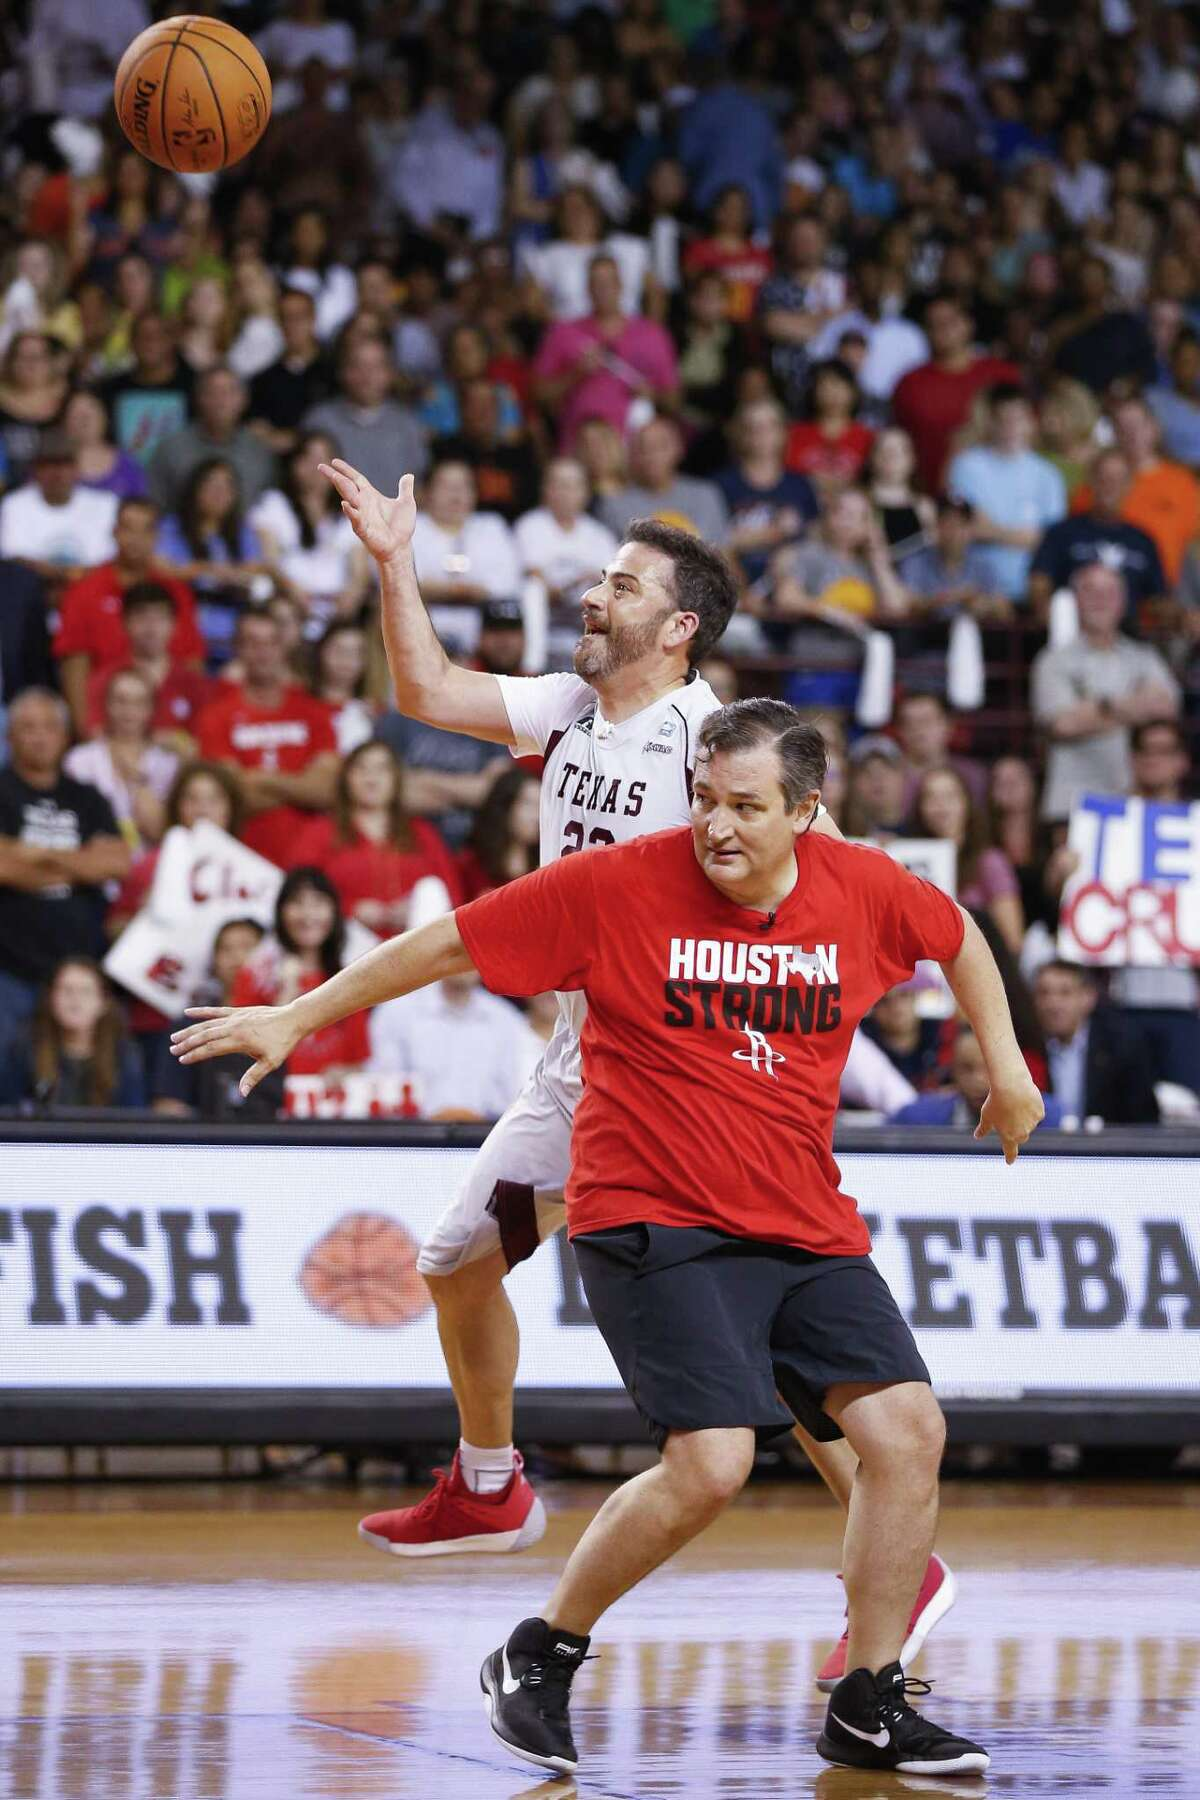 Jimmy Kimmel takes a shot over senator Ted Cruz during the Blobfish Basketball Classic and one-on-one interview at Texas Southern University's Health & Physical Education Arena Saturday, June 16, 2018 in Houston. Cruz challenged Kimmel to the game after Kimmel blamed the Houston Rockets playoff loss on the senator. (Michael Ciaglo / Houston Chronicle)